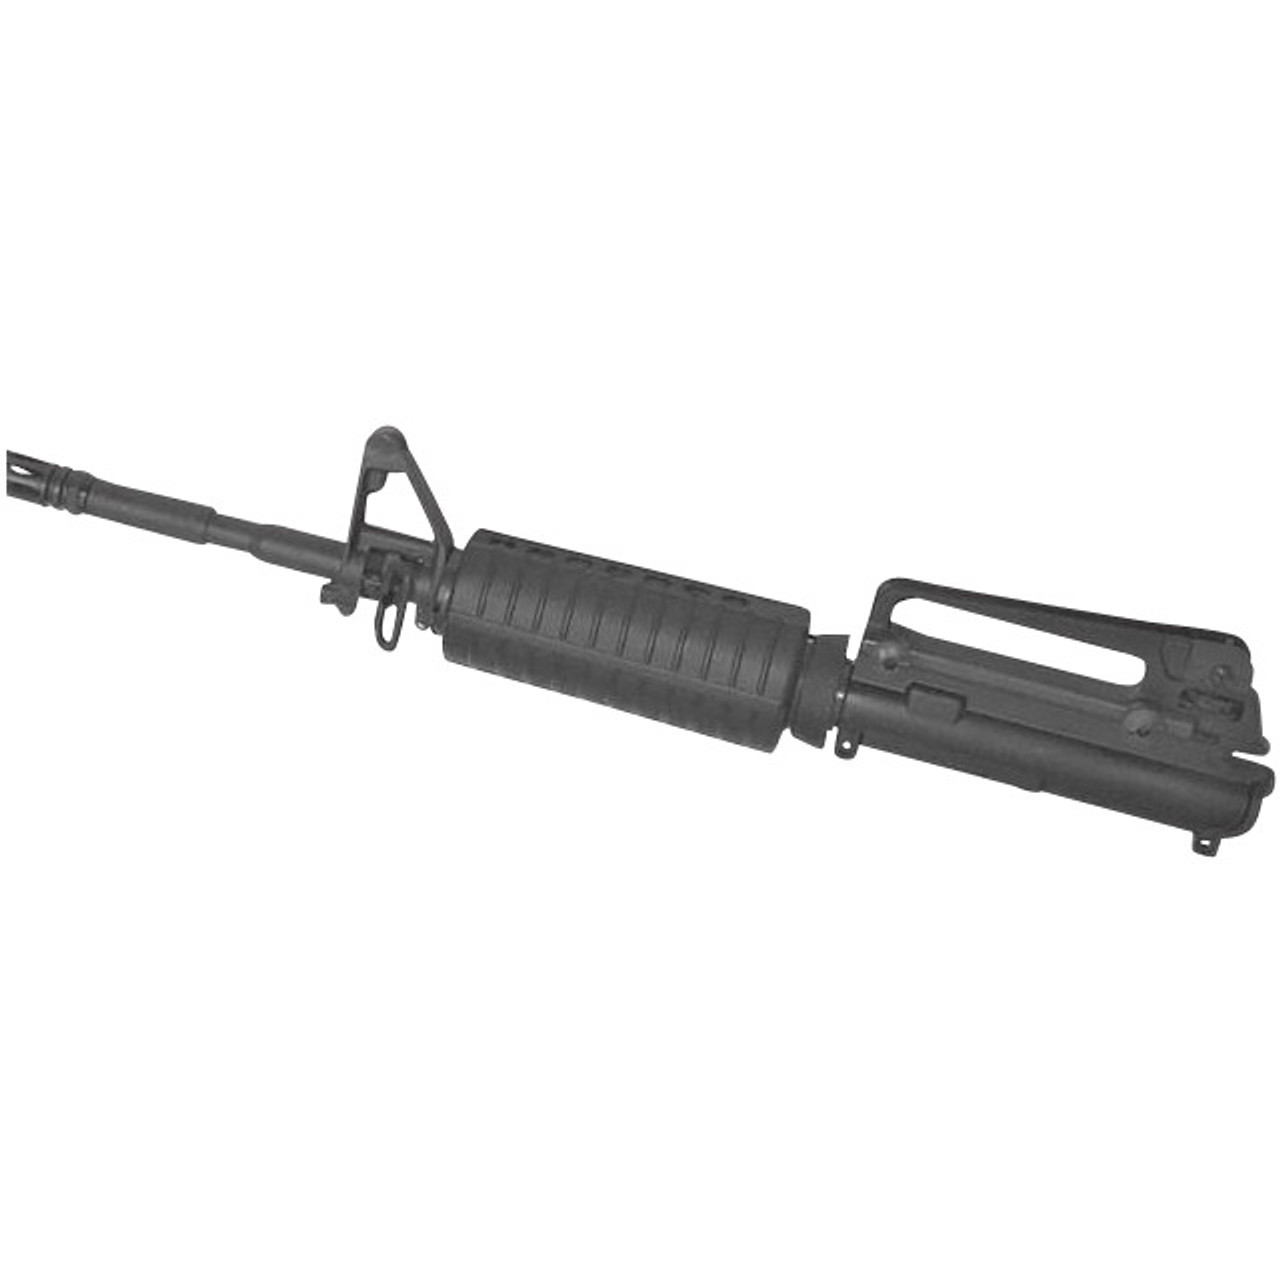 Colt M4 SBR Upper Receiver Group w/Carry Handle (factory new)